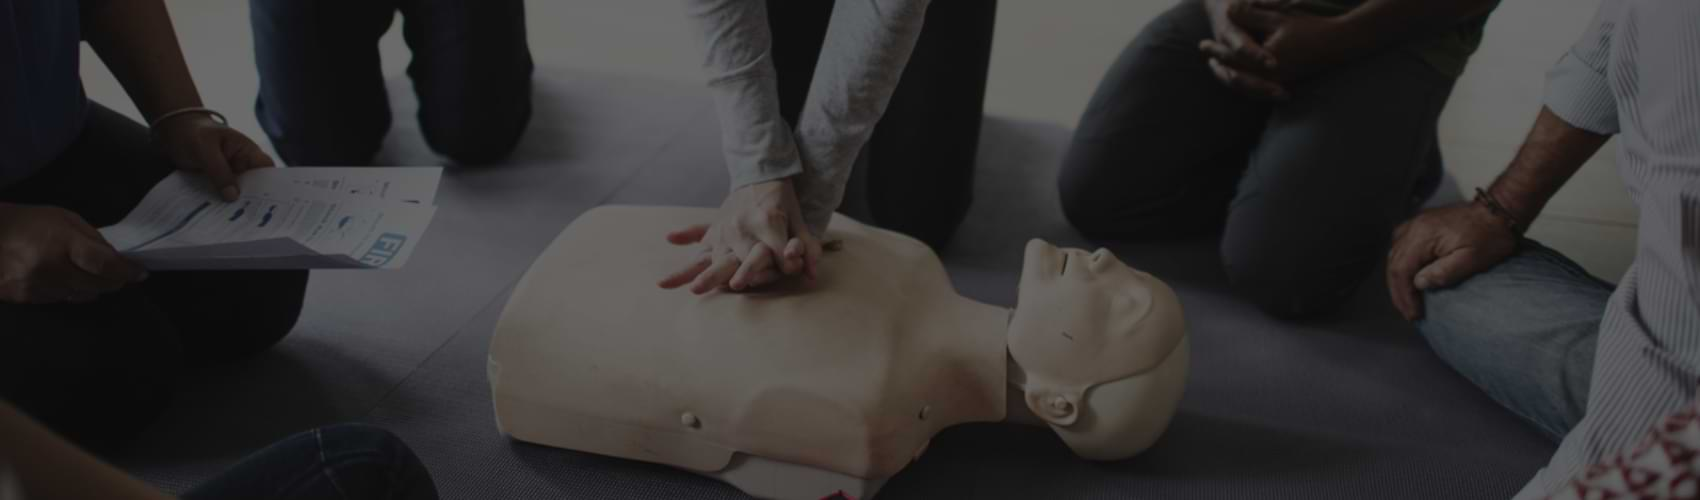 Workplace First Aid training courses delivered on or off site